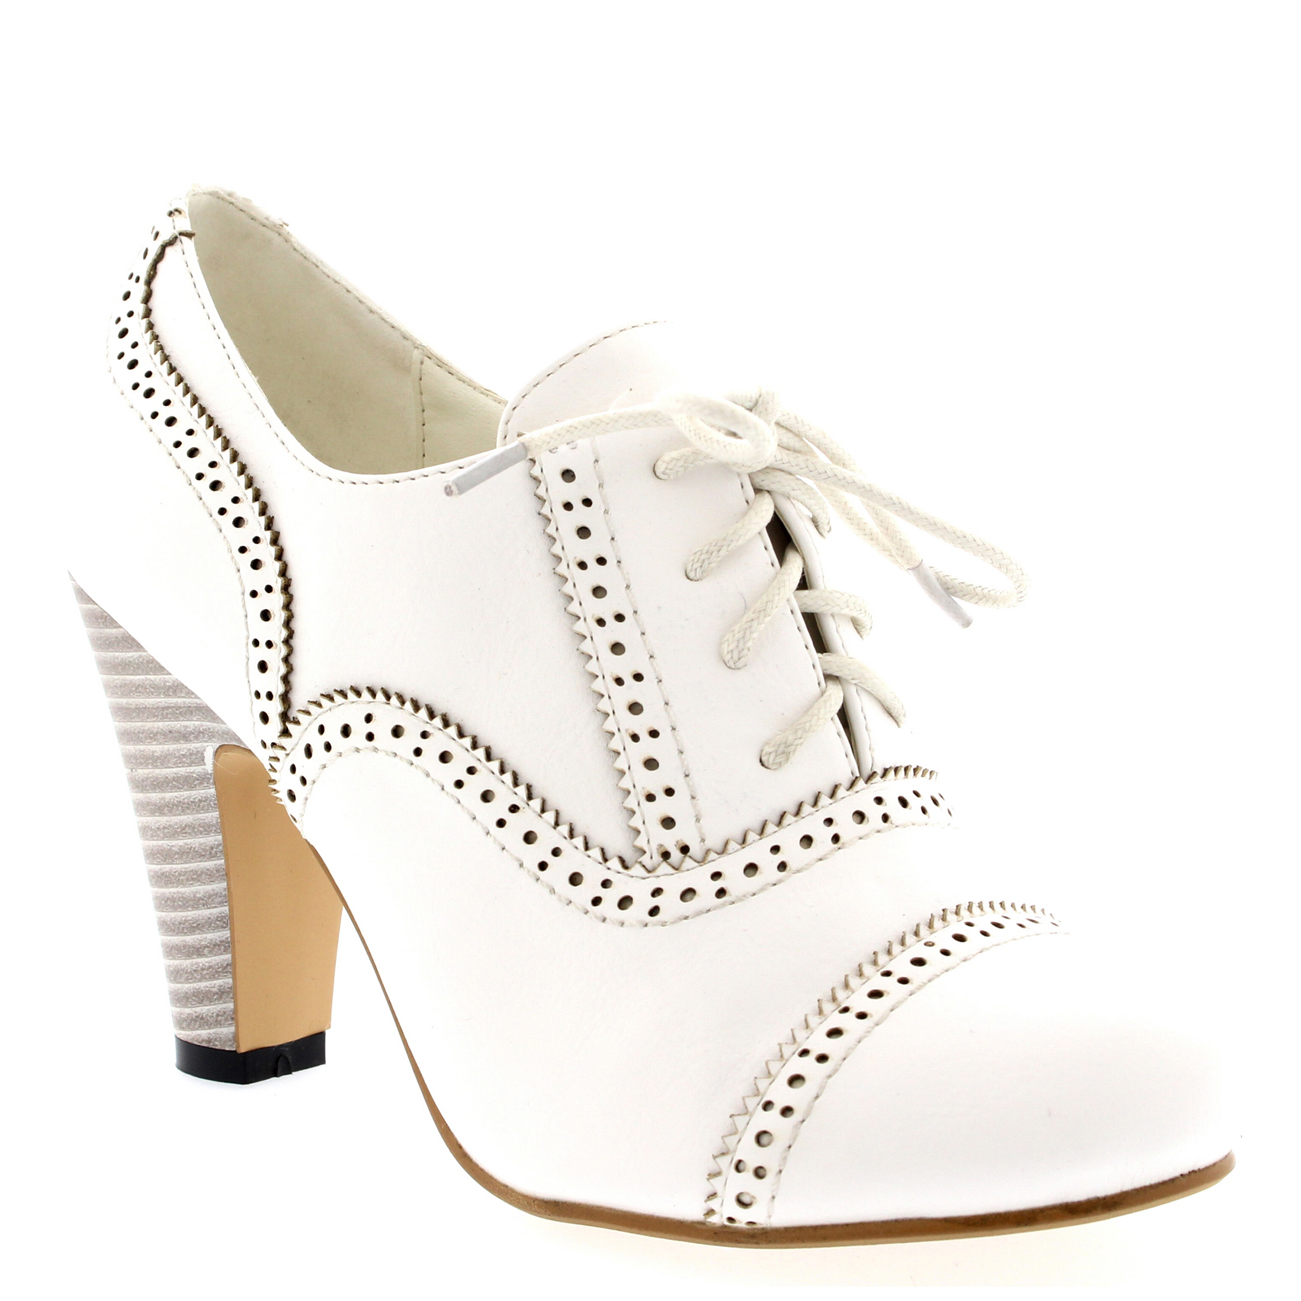 Womens Evening Mid Heel Ankle Boots Party Mary Jane Shoes Block ...